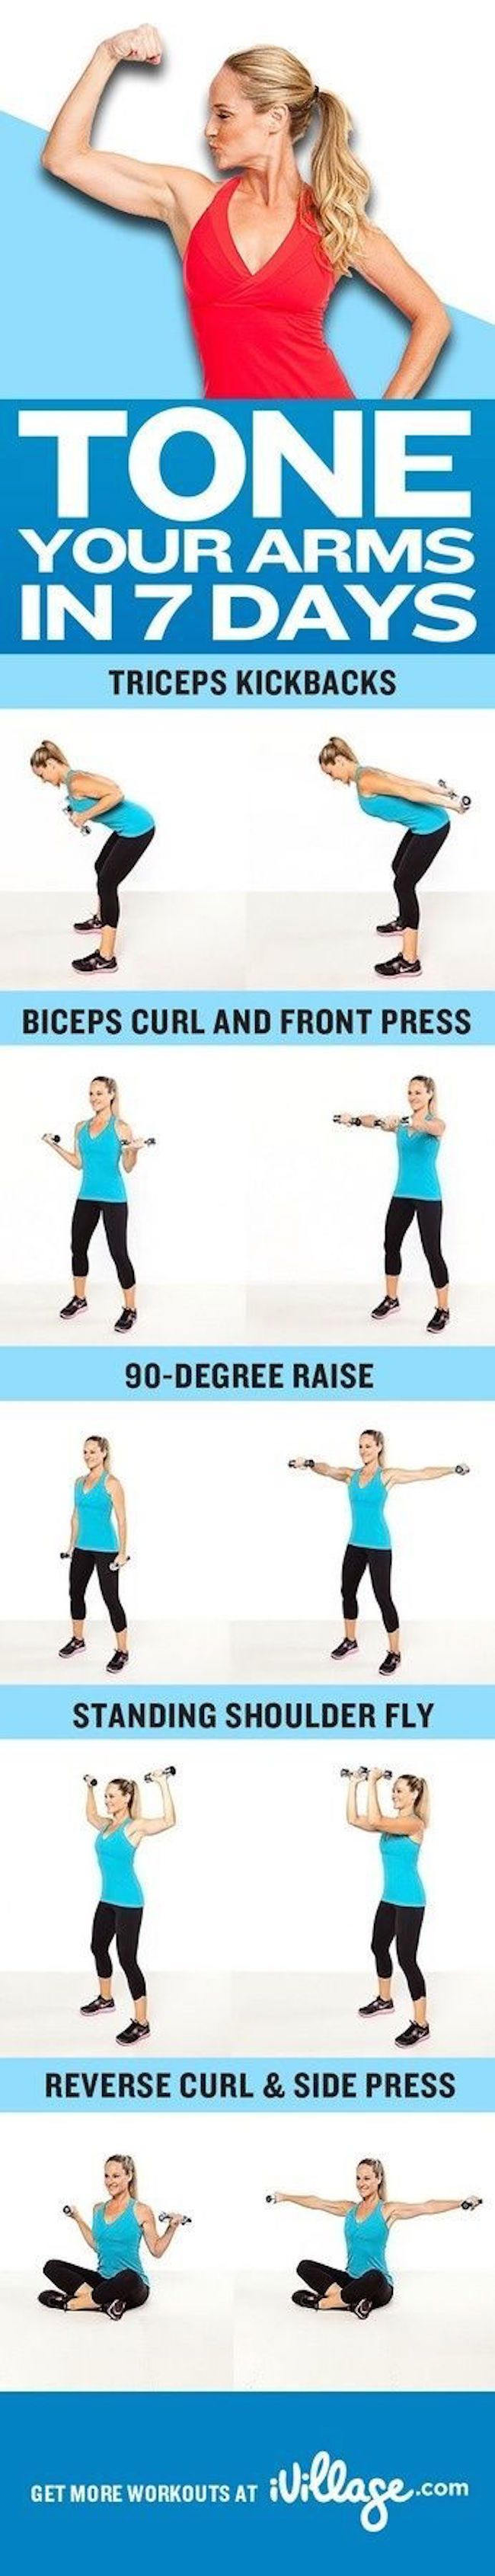 The 11 Best Bat Wing Banishing Workouts - Tone Your Arms in 7 Days